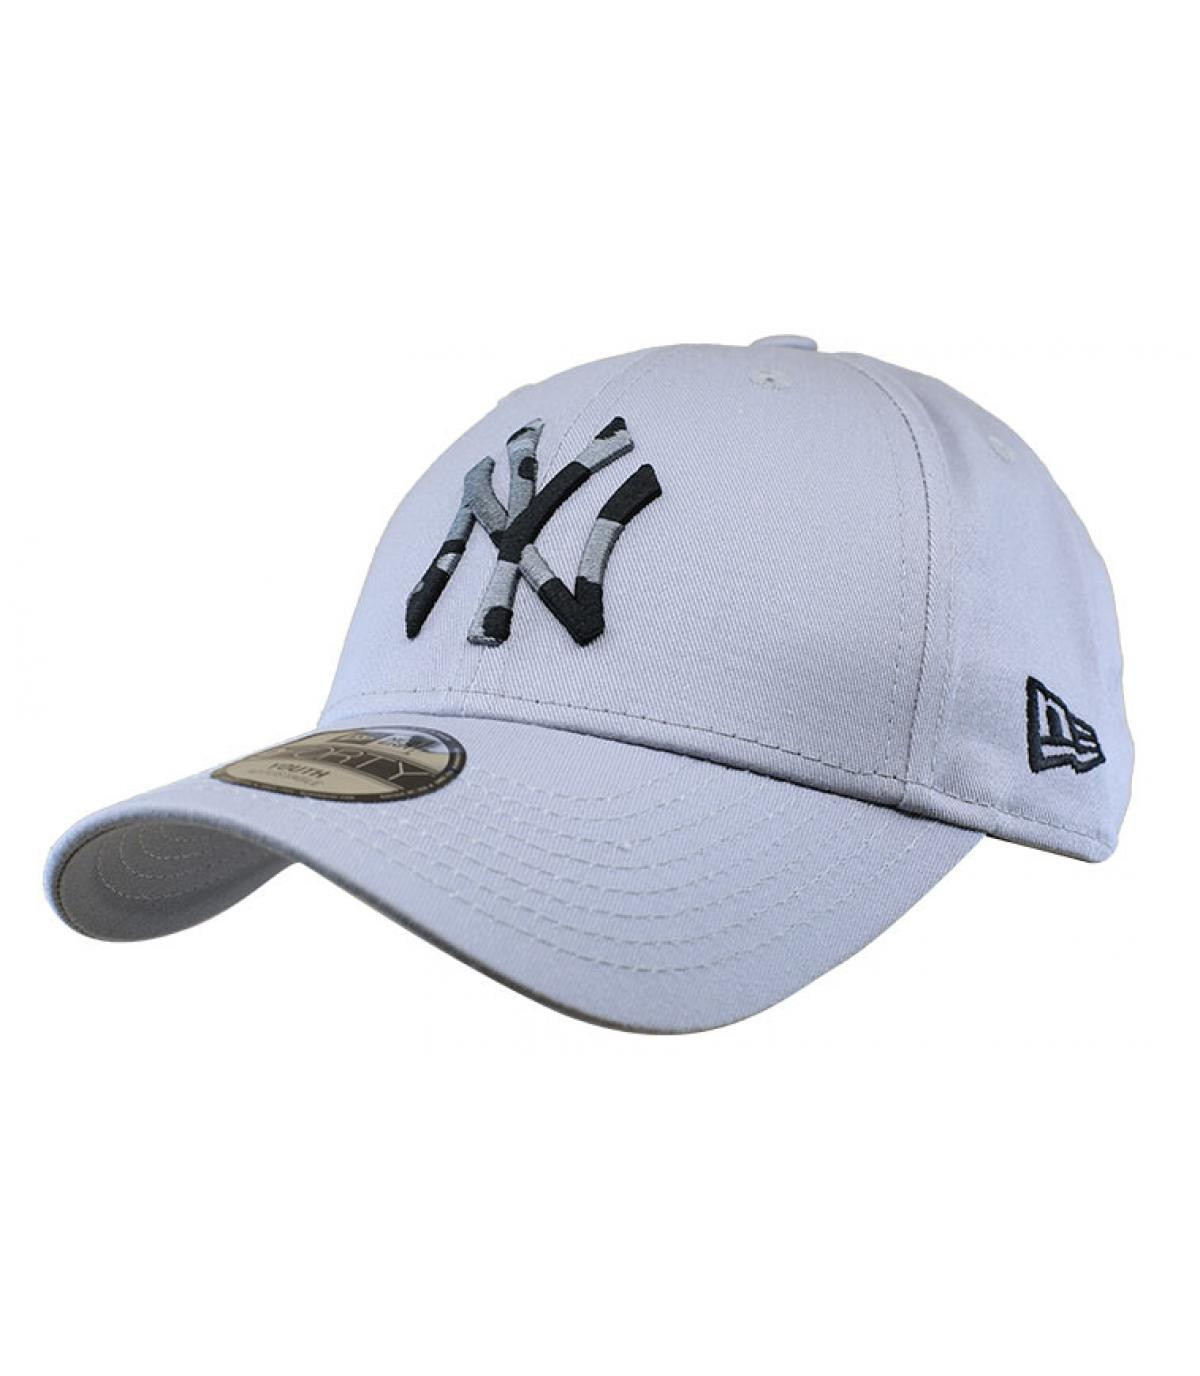 Détails Casquette Kids Camo Infill NY gray - image 2